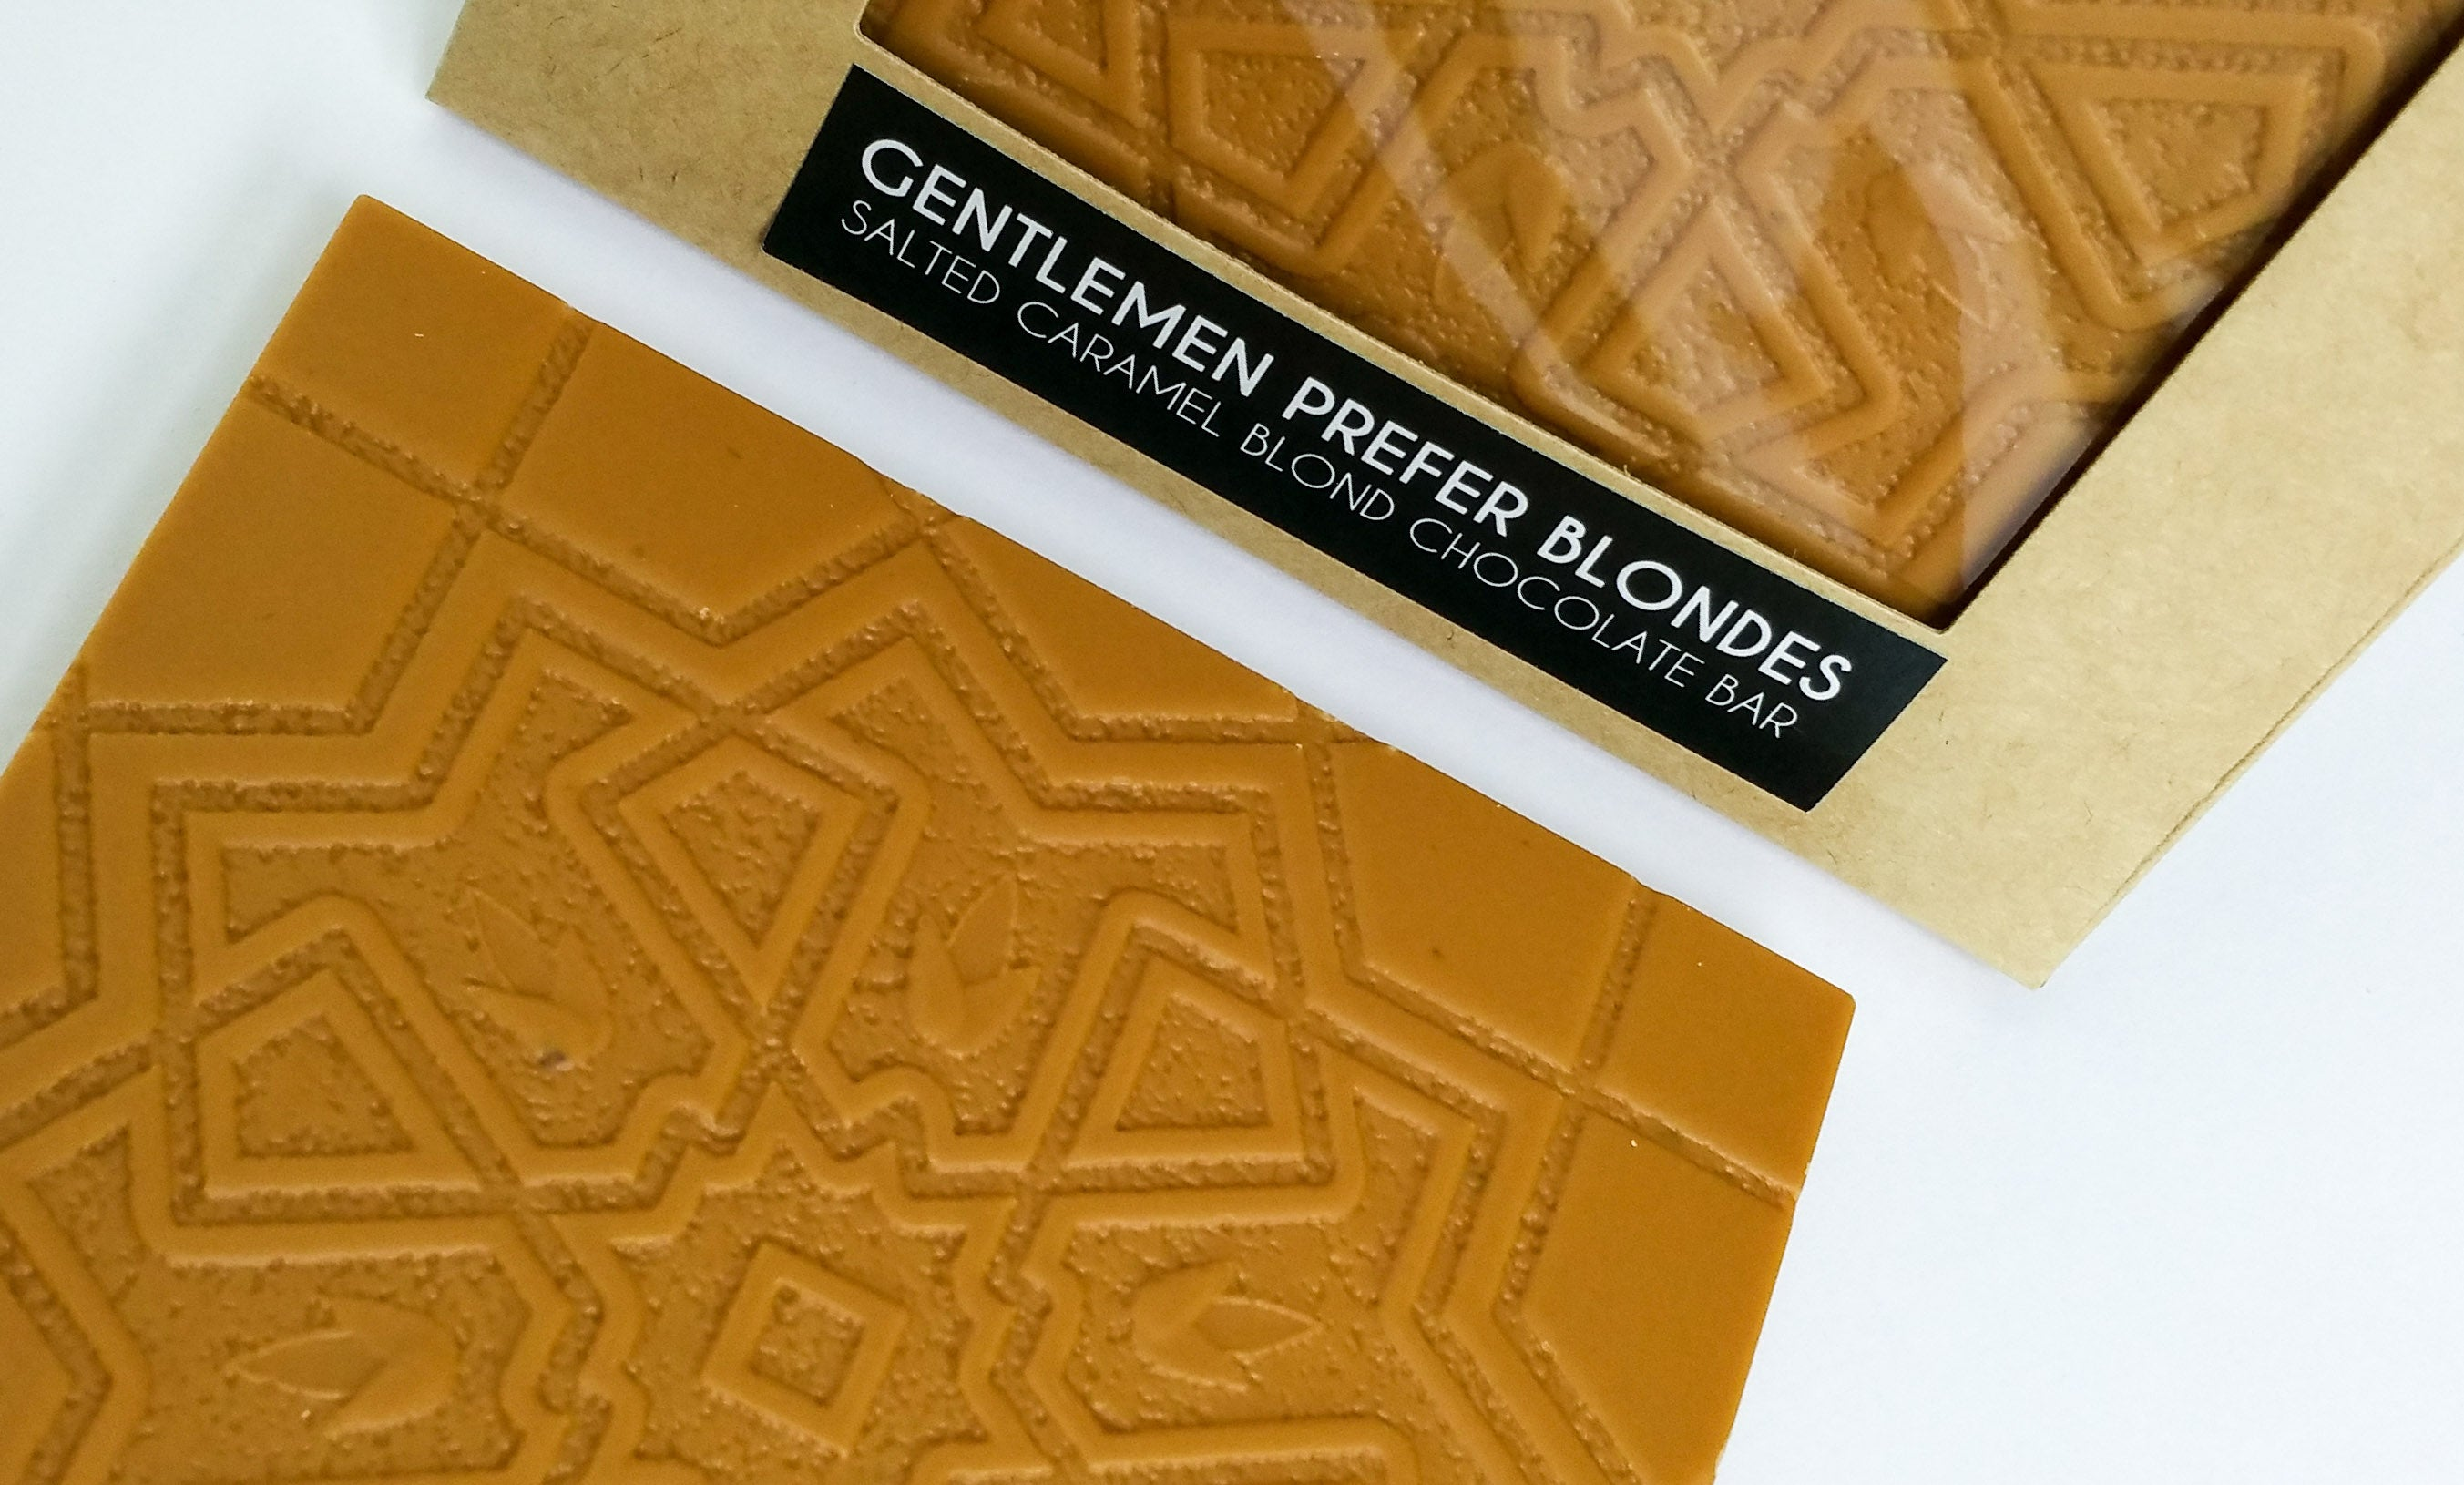 Gentlemen Prefer Blondes [Salted Caramel Blond Chocolate]